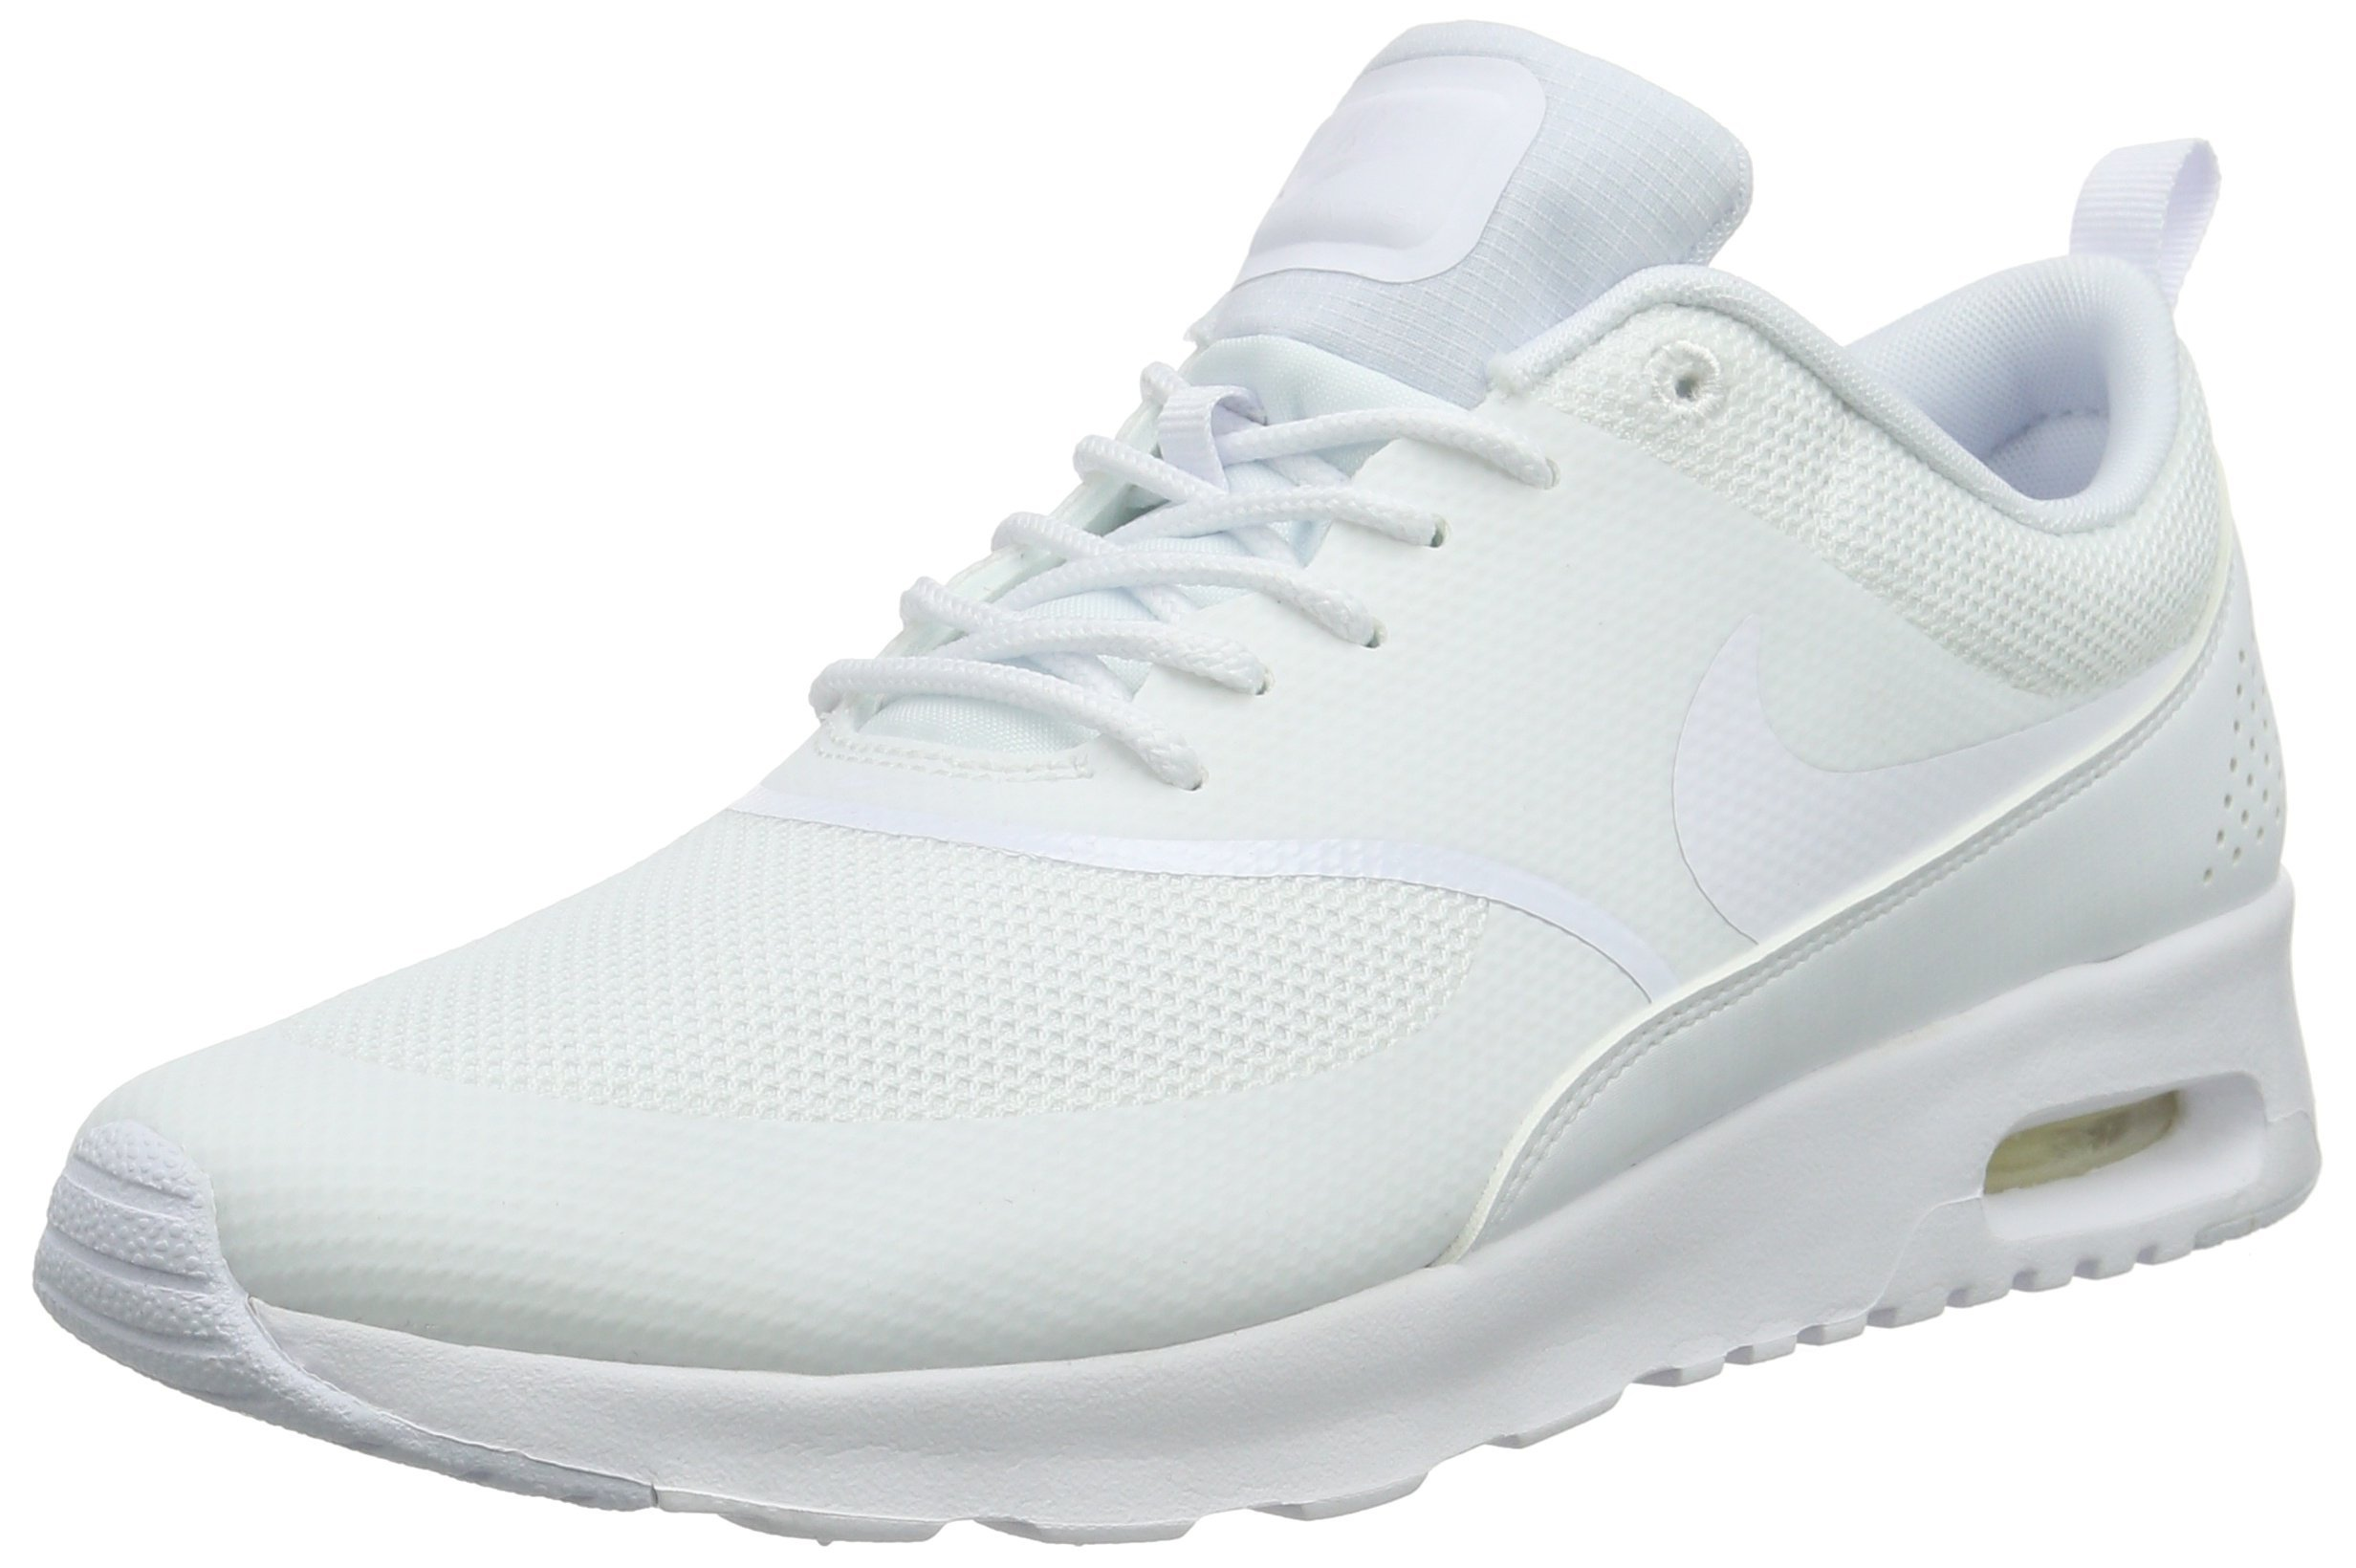 Nike Air Max Thea Womens Style: 599409-101 Size: 11 M US